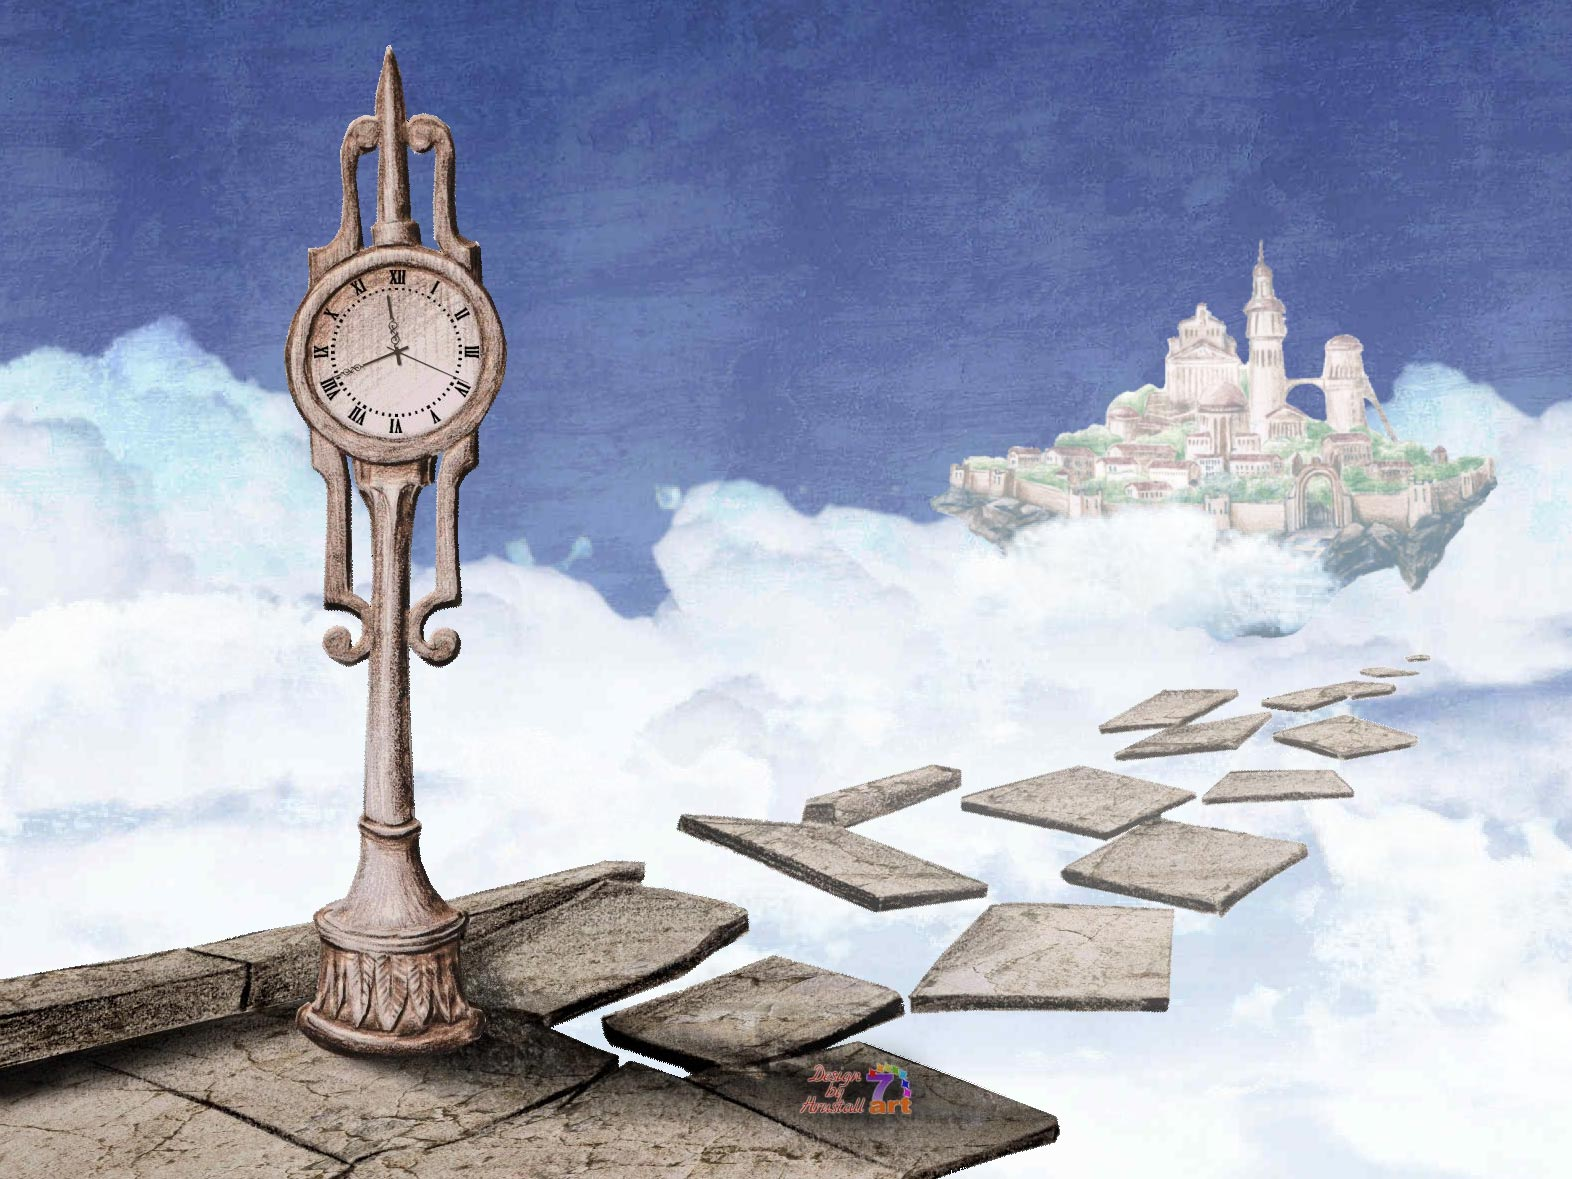 Laputa Flying Island Clock screensaver - magic staircase shows the